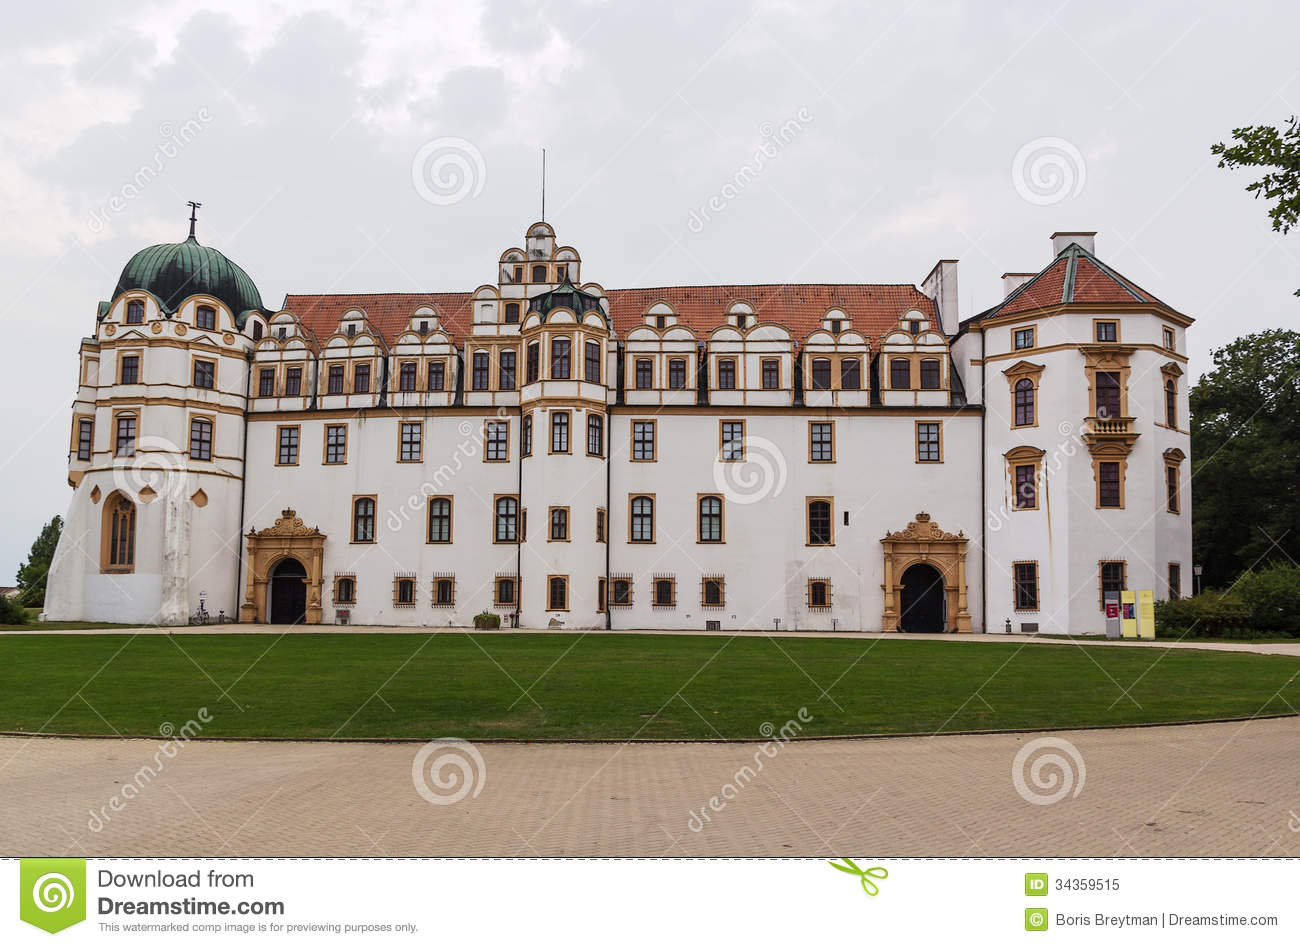 Celle castle germany stock image image of exterior for The hanover house